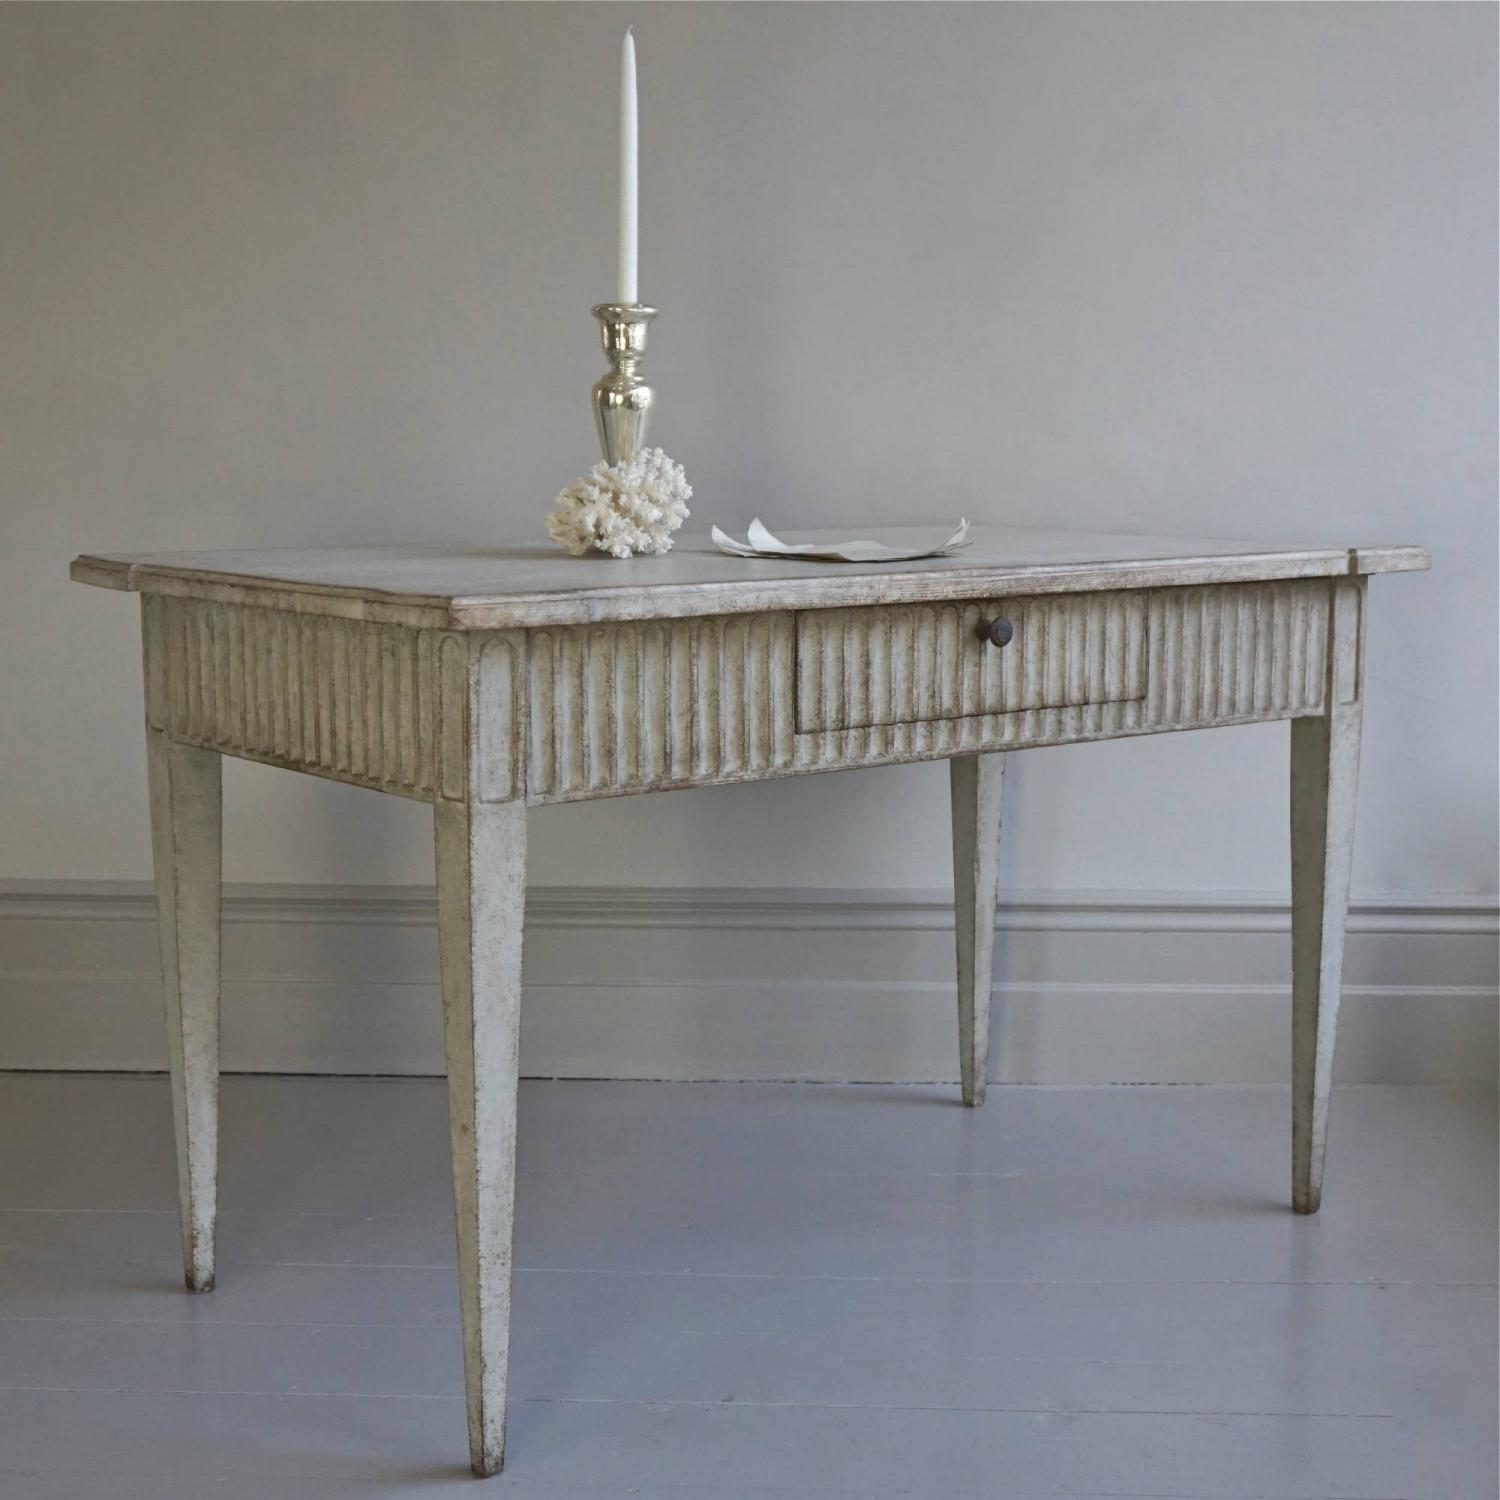 BEAUTIFUL RICHLY CARVED GUSTAVIAN STYLE TABLE OR DESK